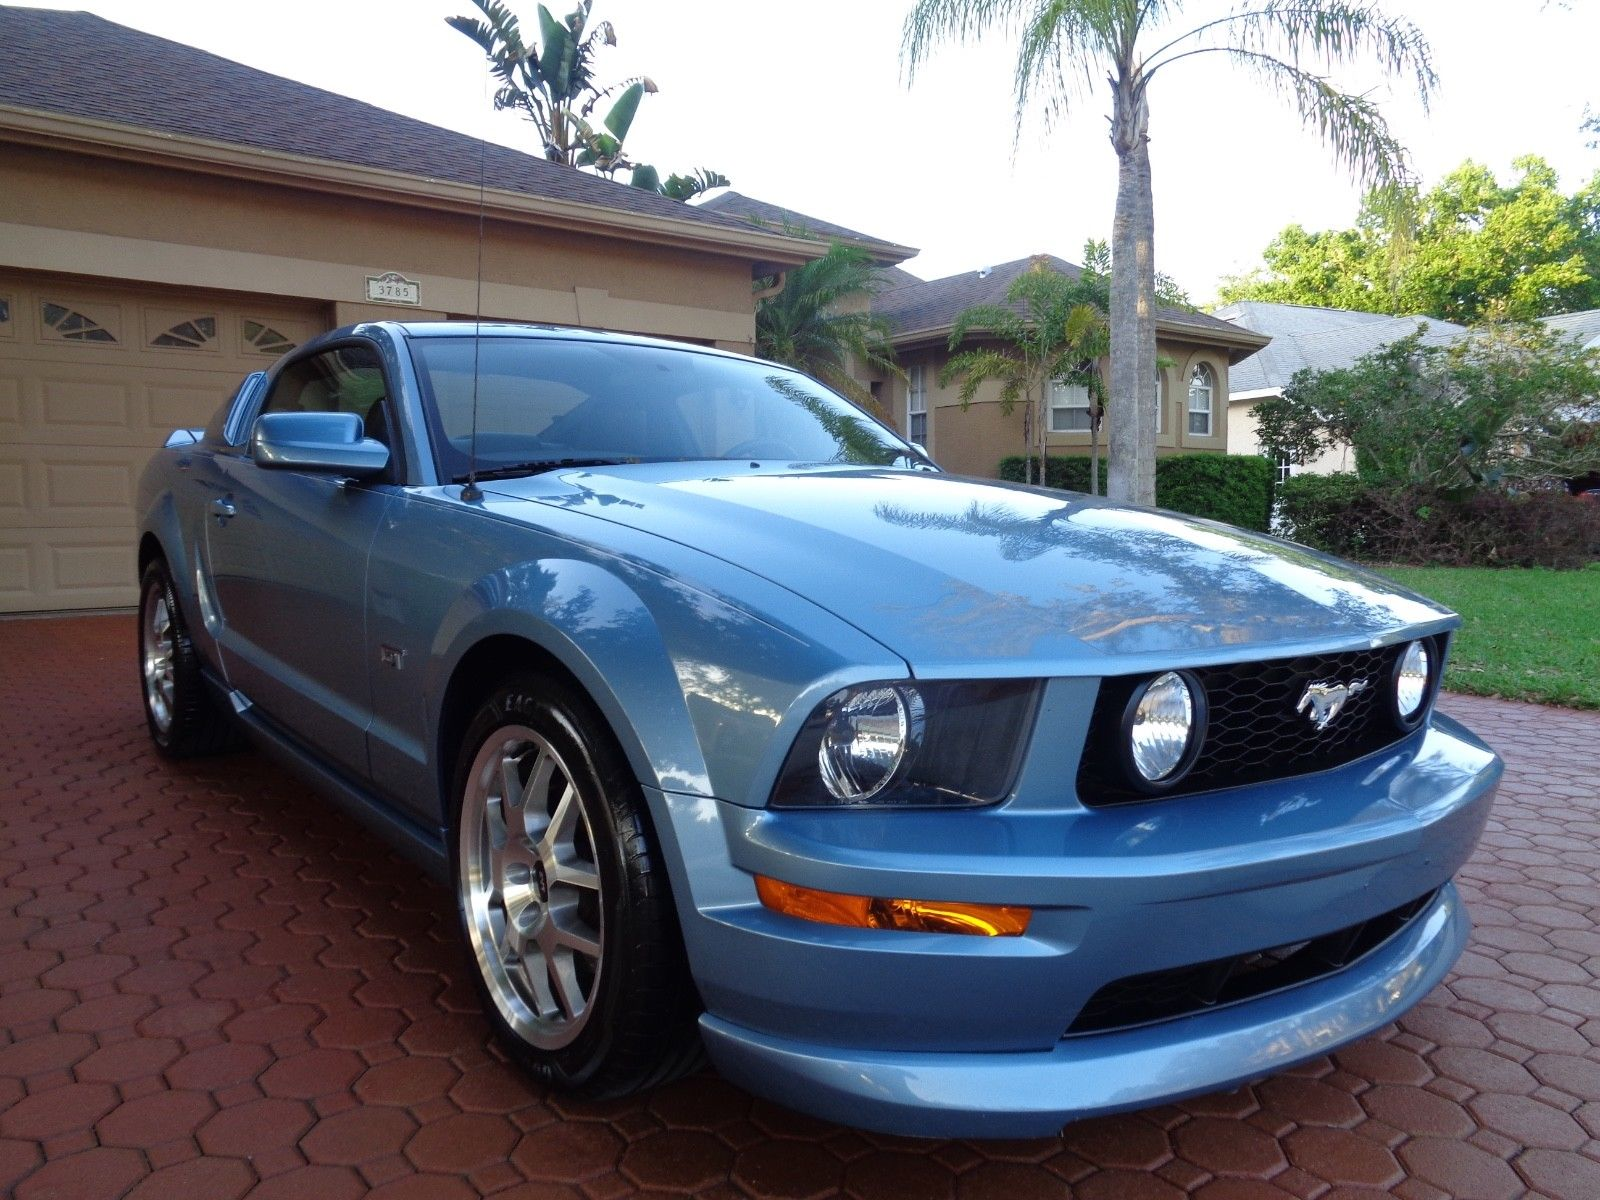 Awesome 2005 ford mustang premium gt package 2006 ford mustang gt premium 5sp leather 18″ svt whls 1 fl owner immaculate mint 2017 2018